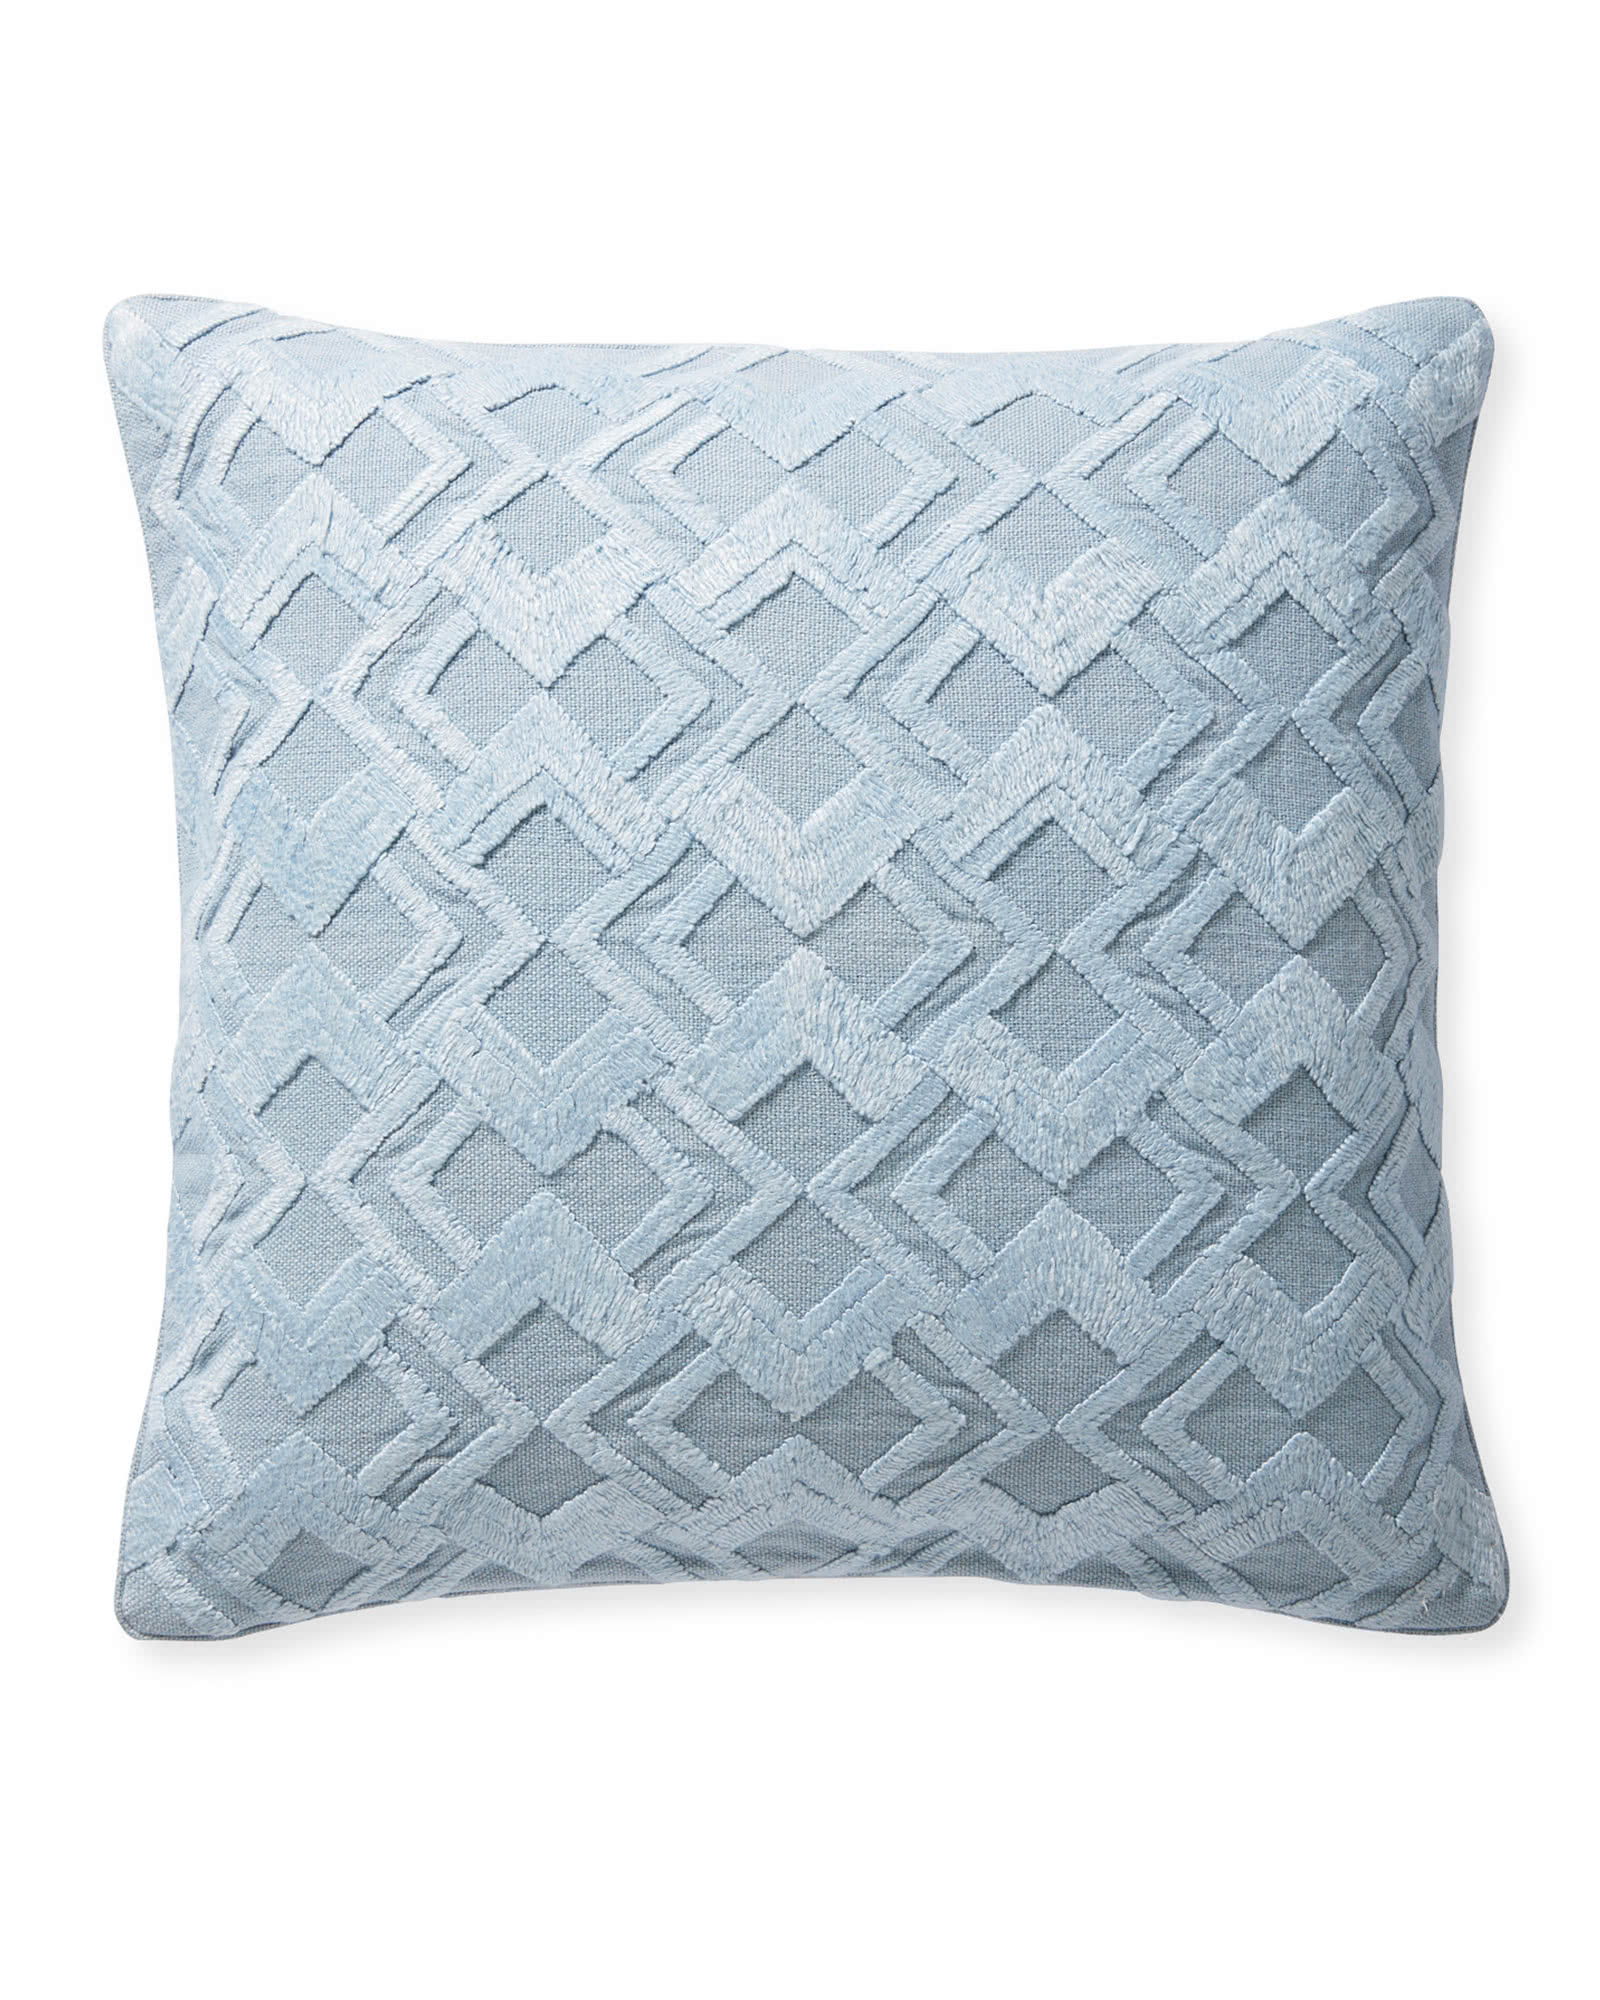 Paige Pillow Cover, Coastal Blue